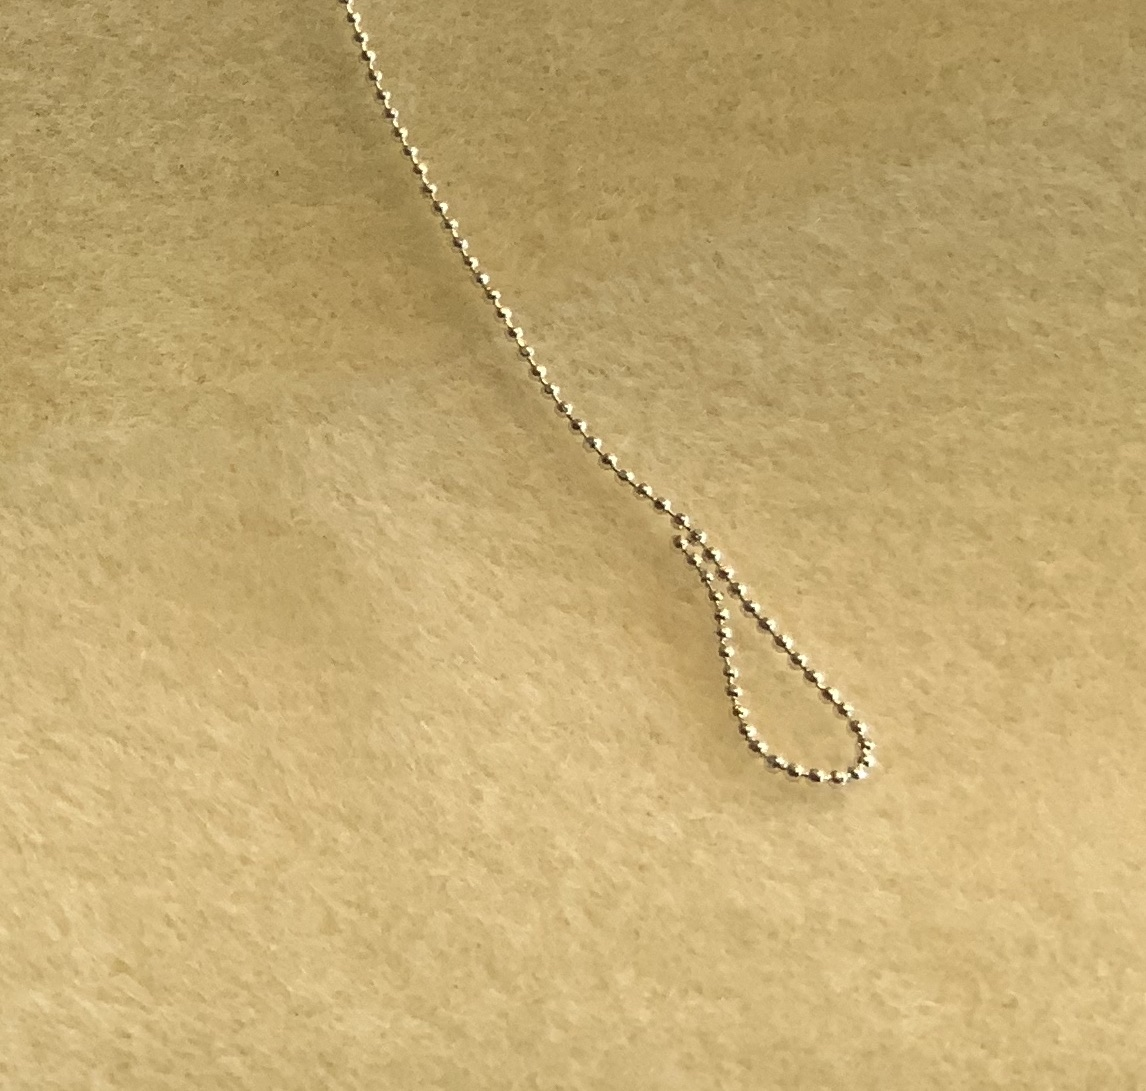 1mm Faceted Ball Chain